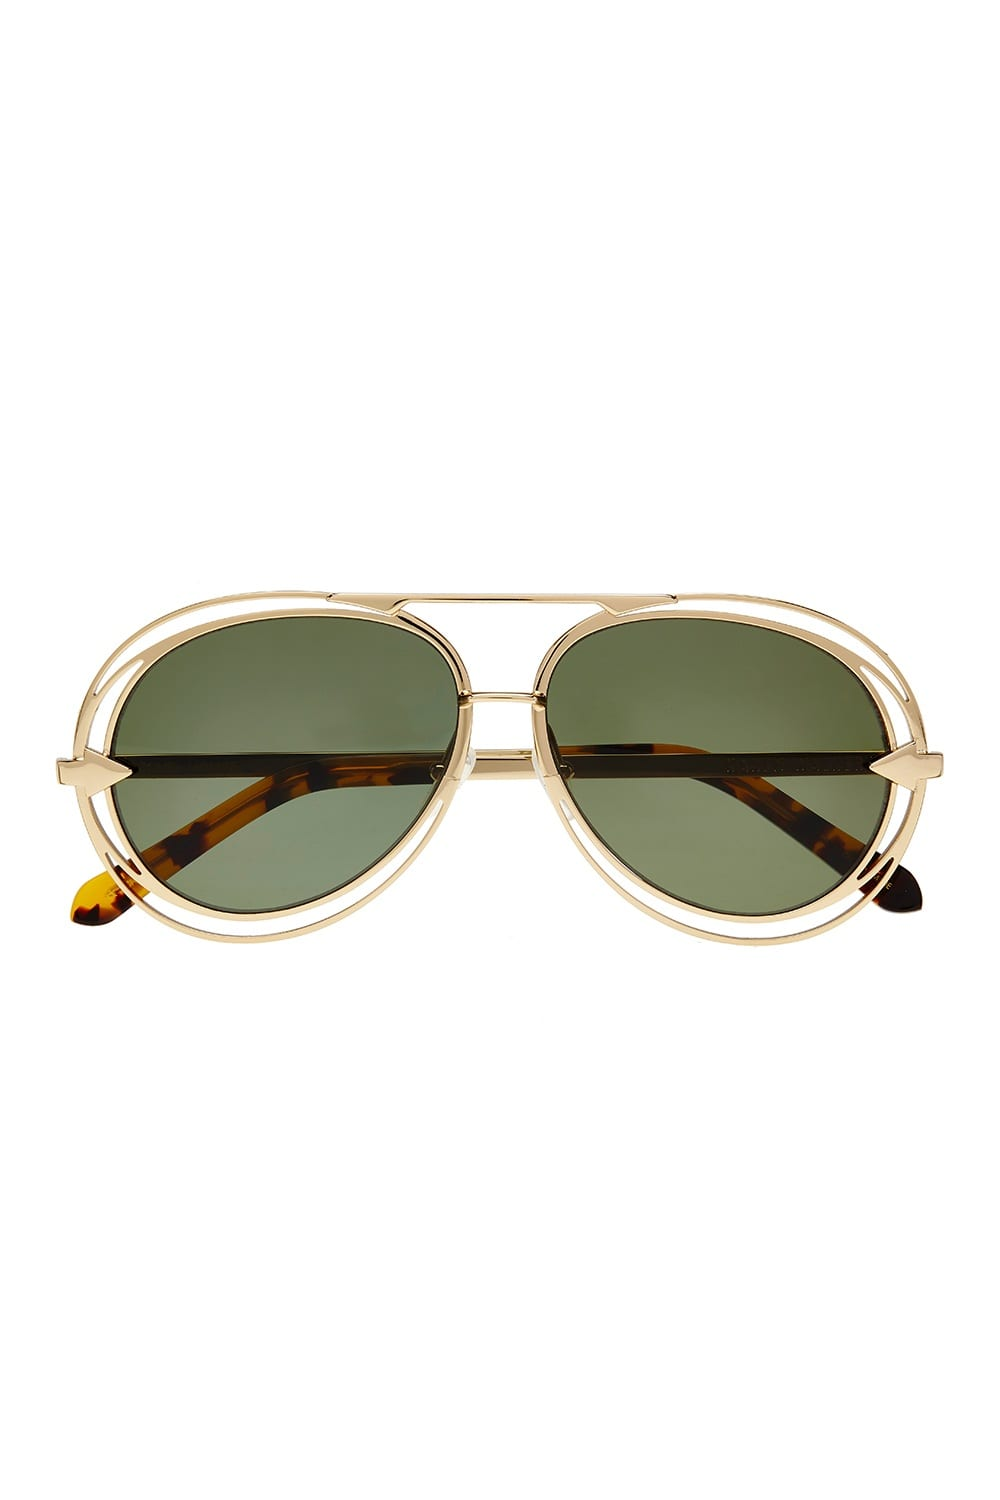 KAREN WALKER - METALS - JACQUES